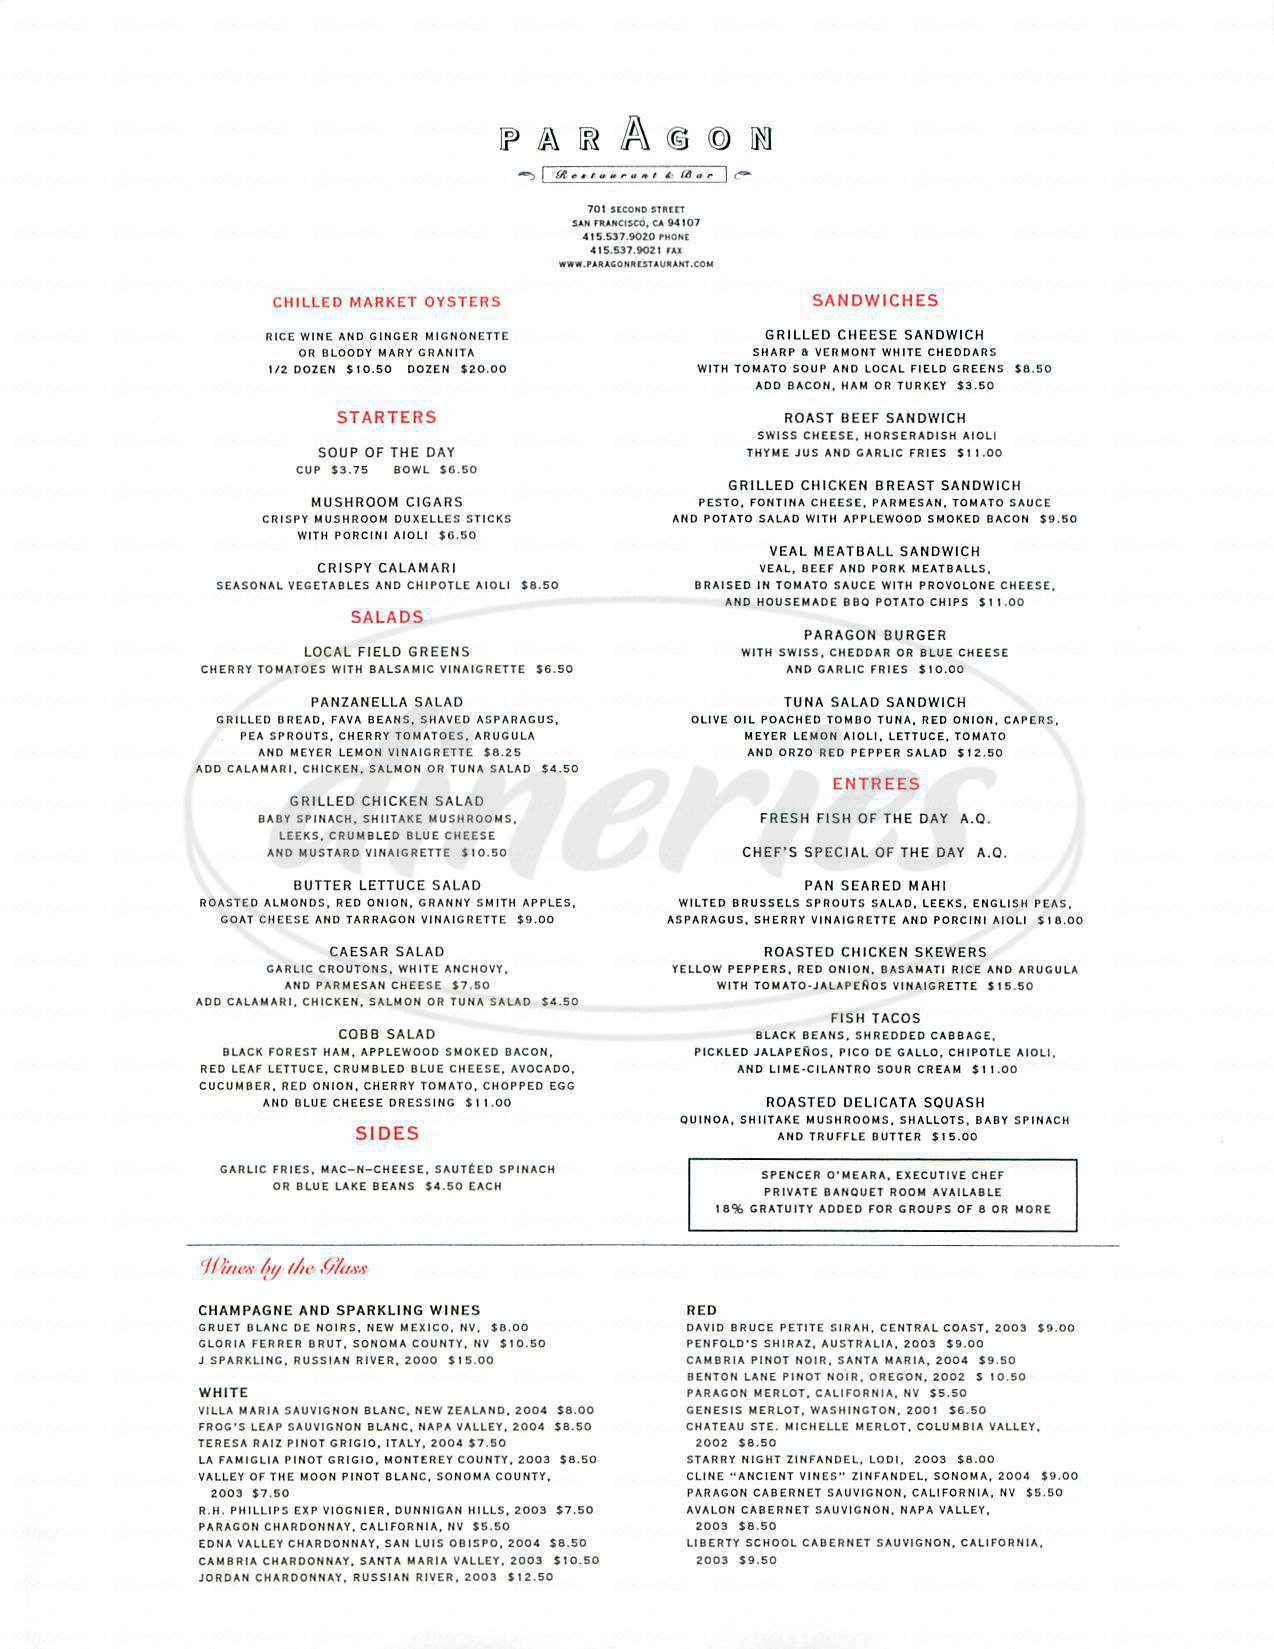 menu for Paragon Restaurant & Bar